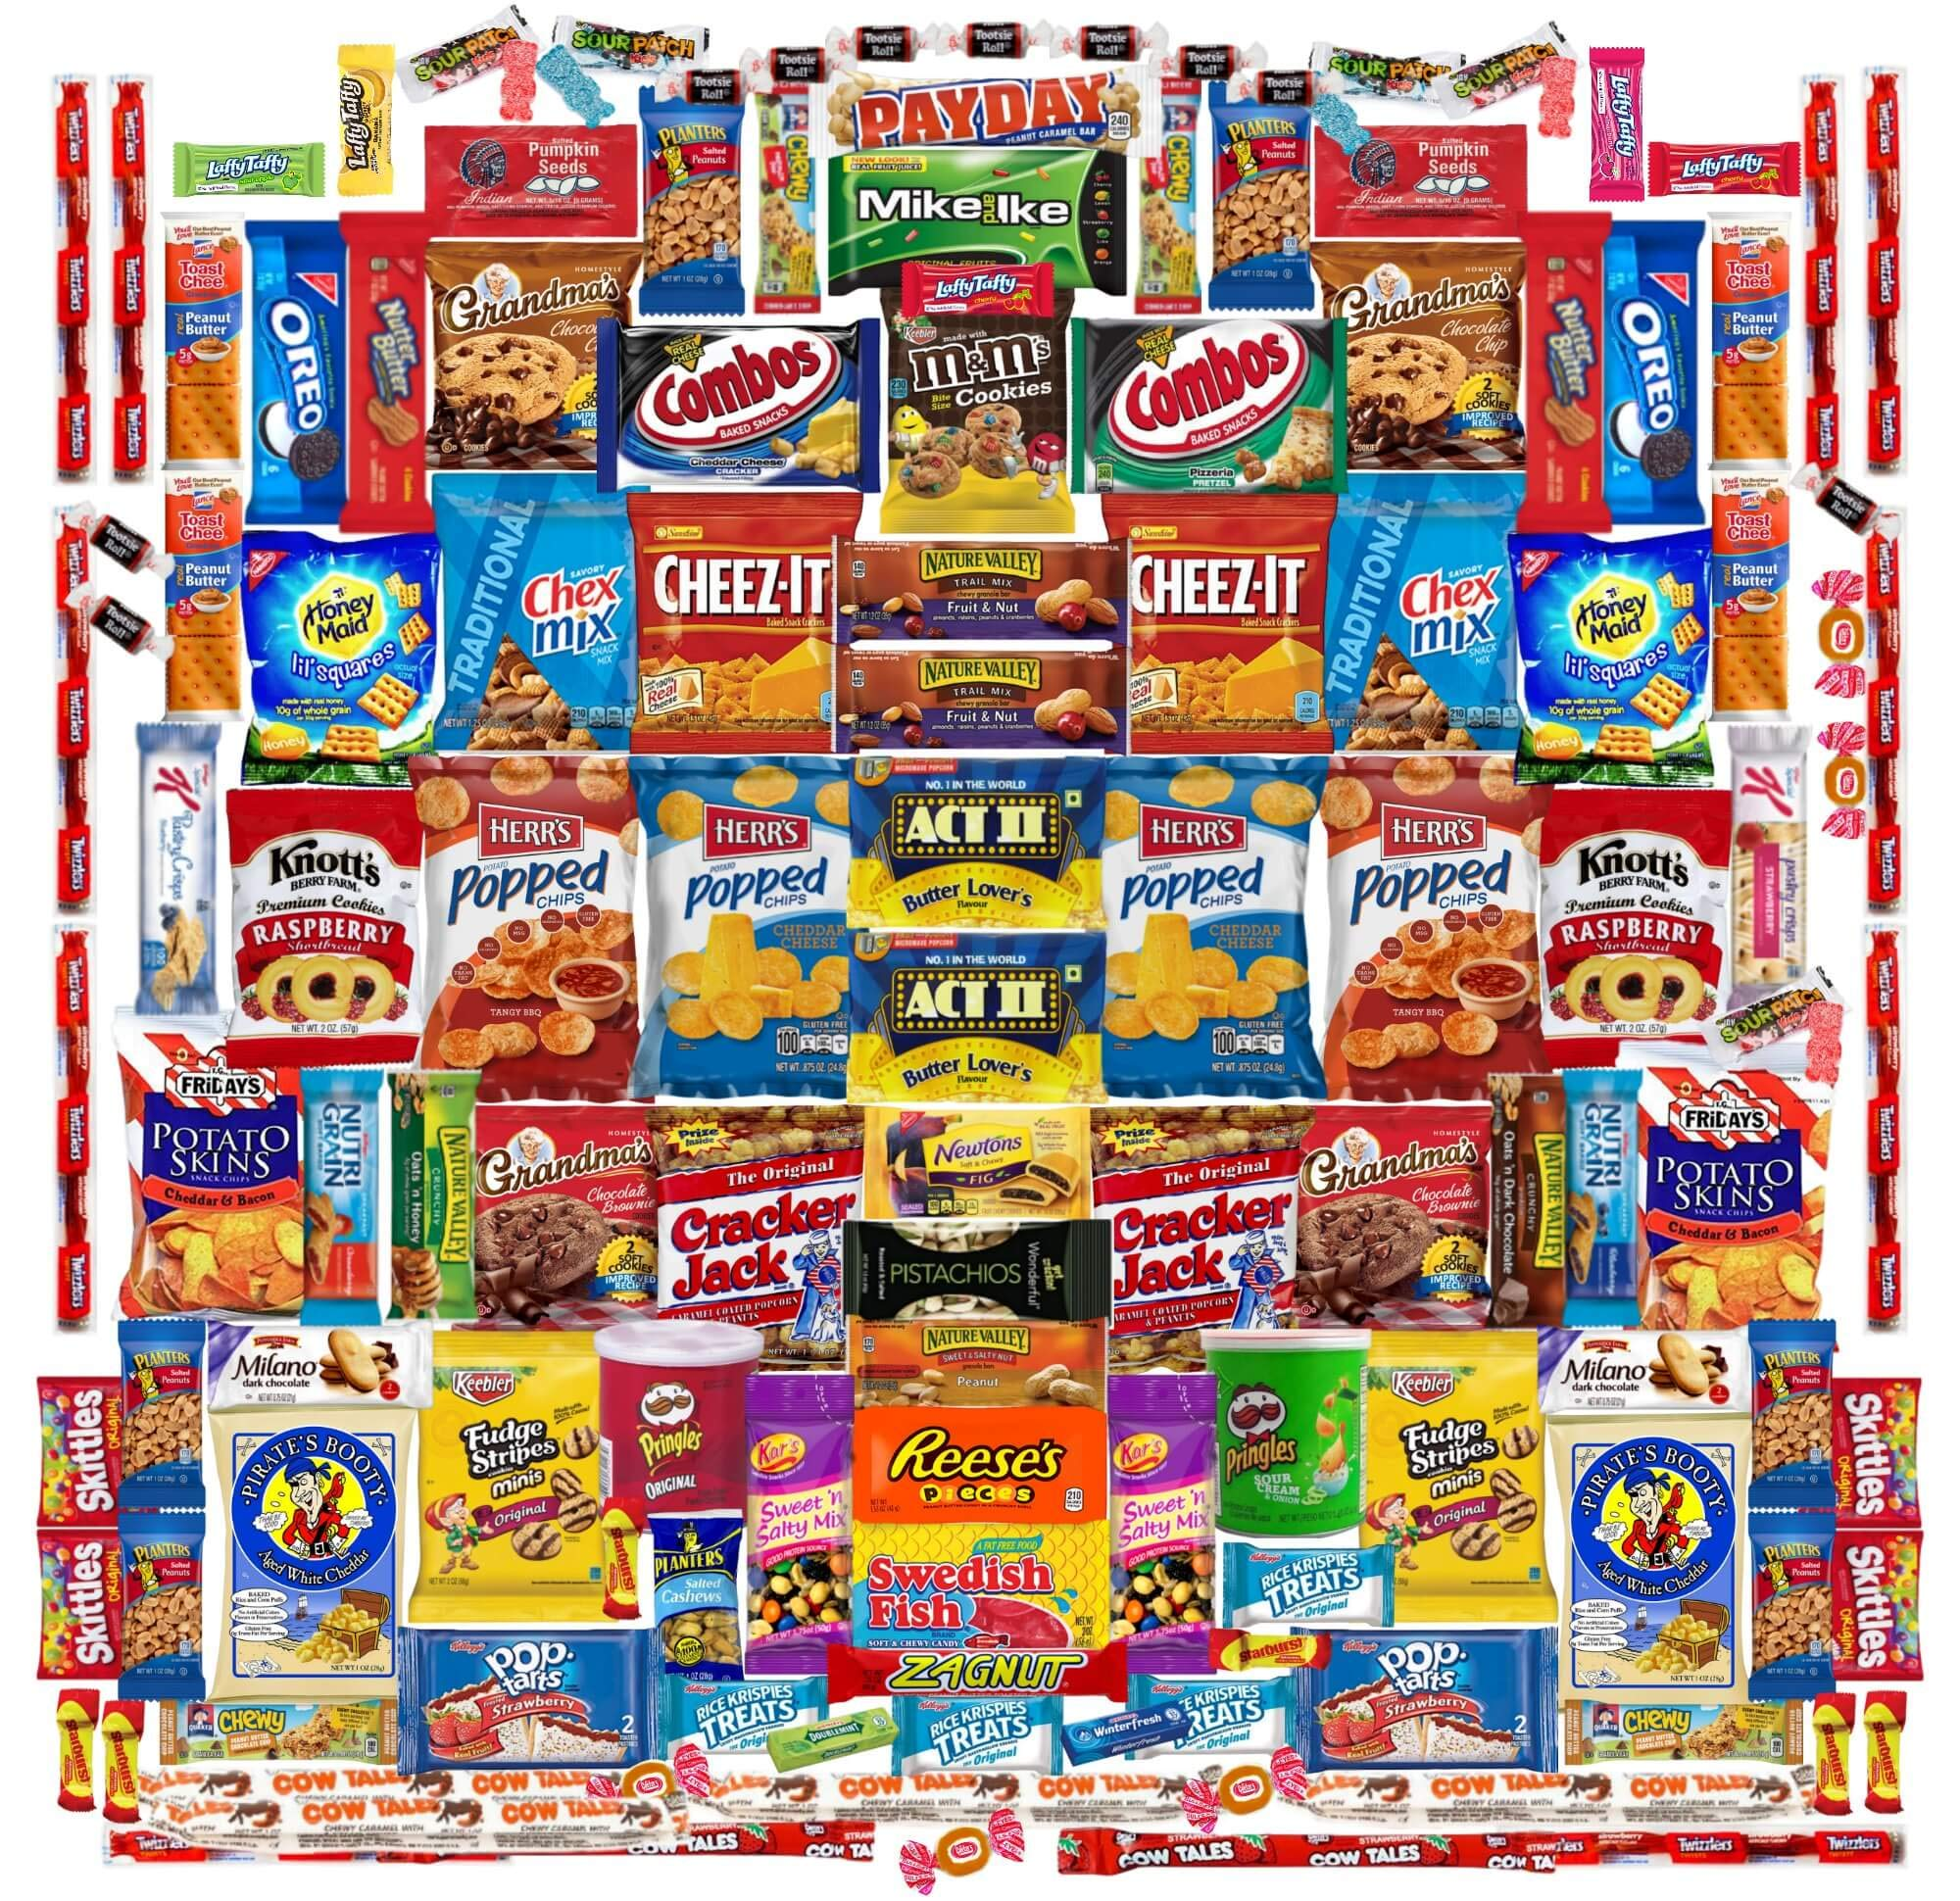 Deluxe 130 Count Snack Food Variety Pack | Office Snacks or School Lunchbox Snacks |10 Pounds of Sweet and Salty Options by Perpetual Motion Enterprises, Inc. (Image #1)